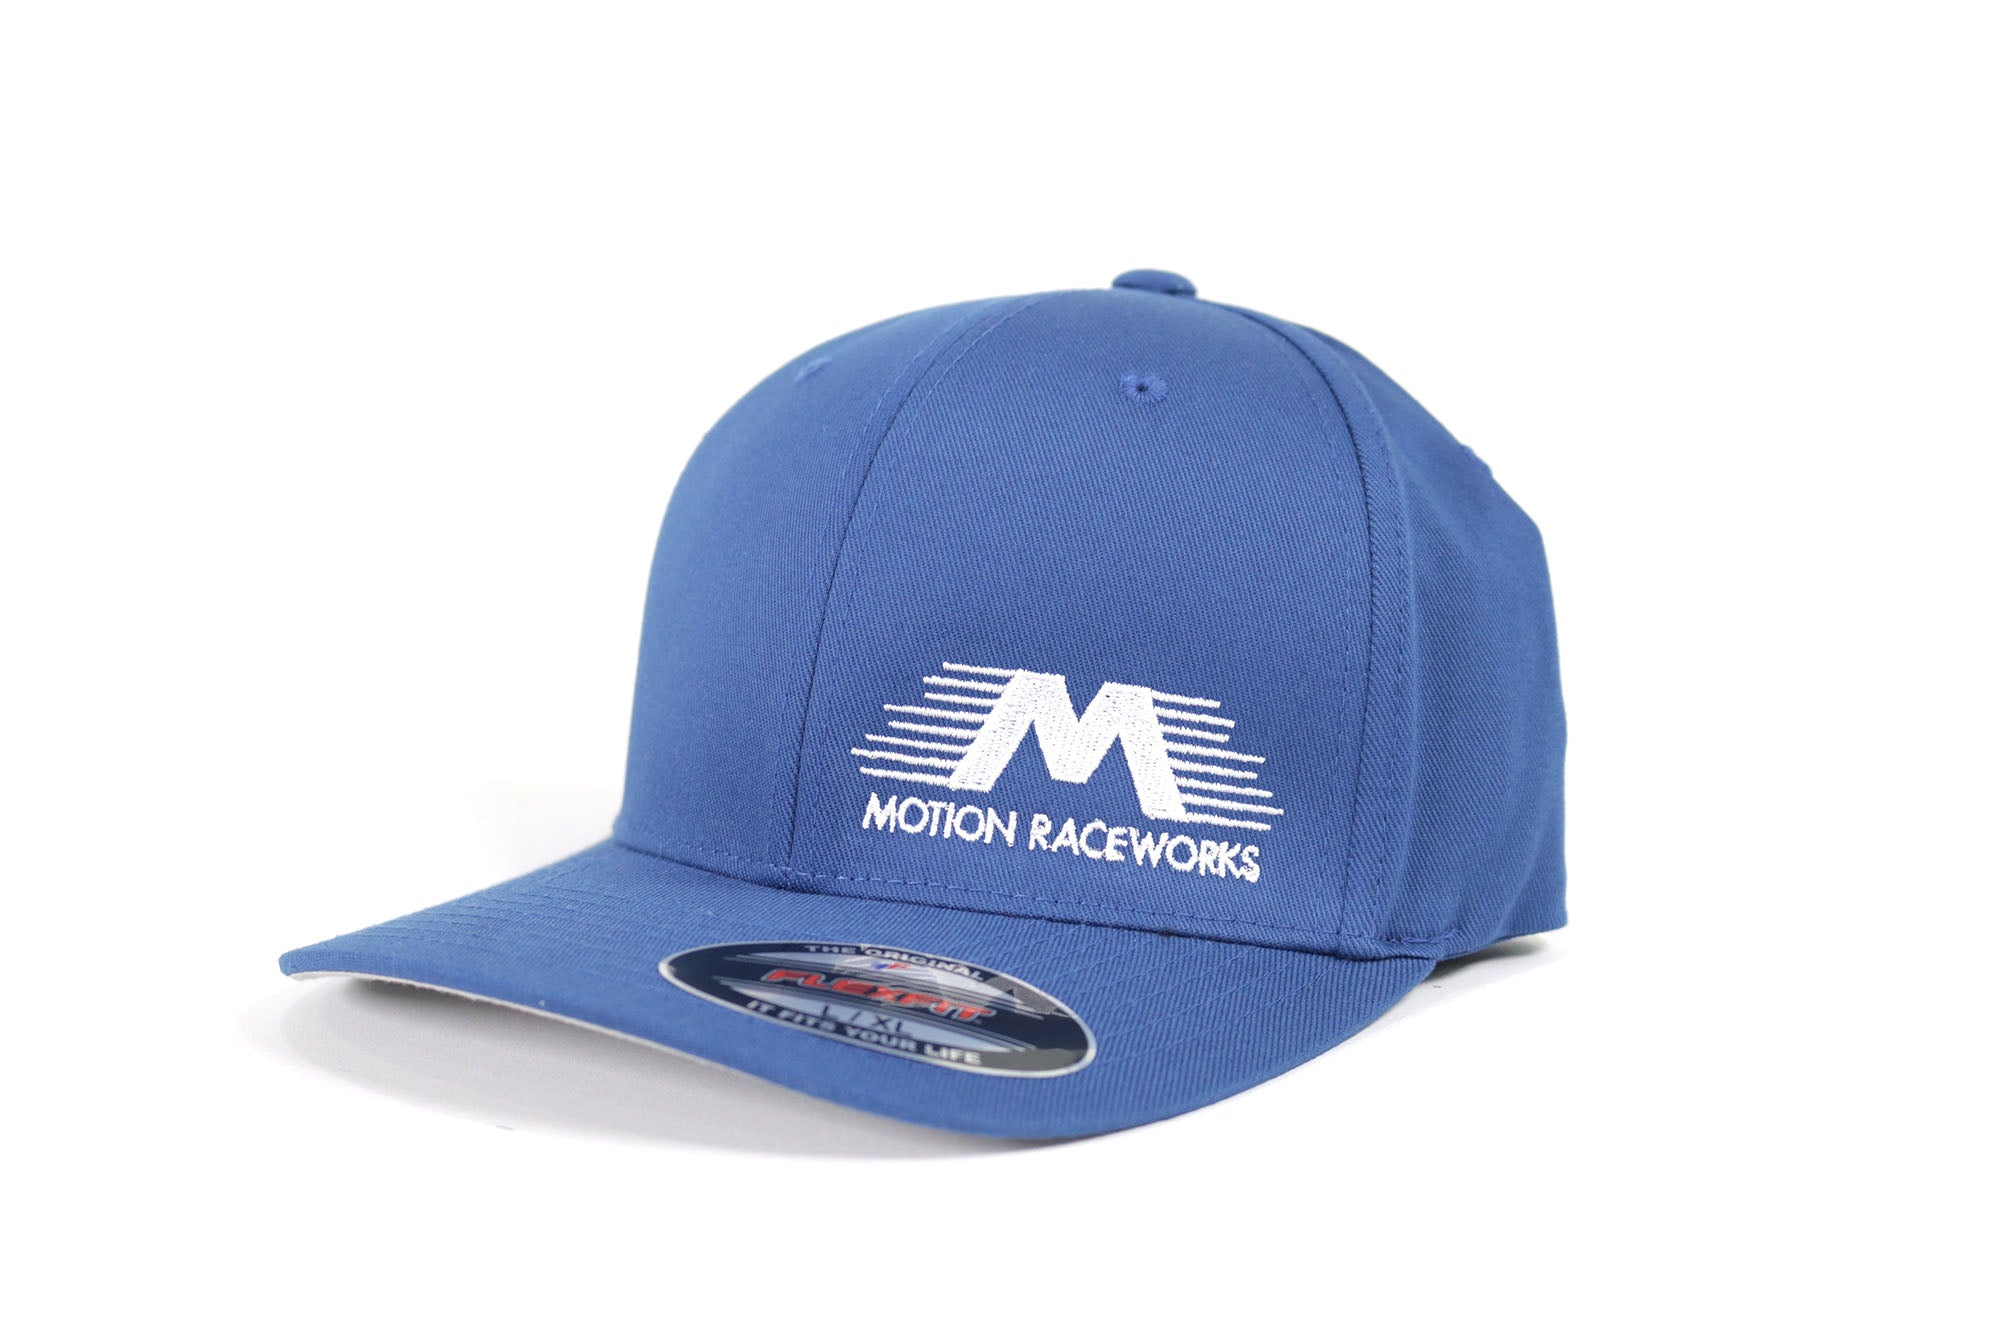 Blue Motion Raceworks Flexfit Hat S/M & L/XL-Motion Raceworks-Motion Raceworks